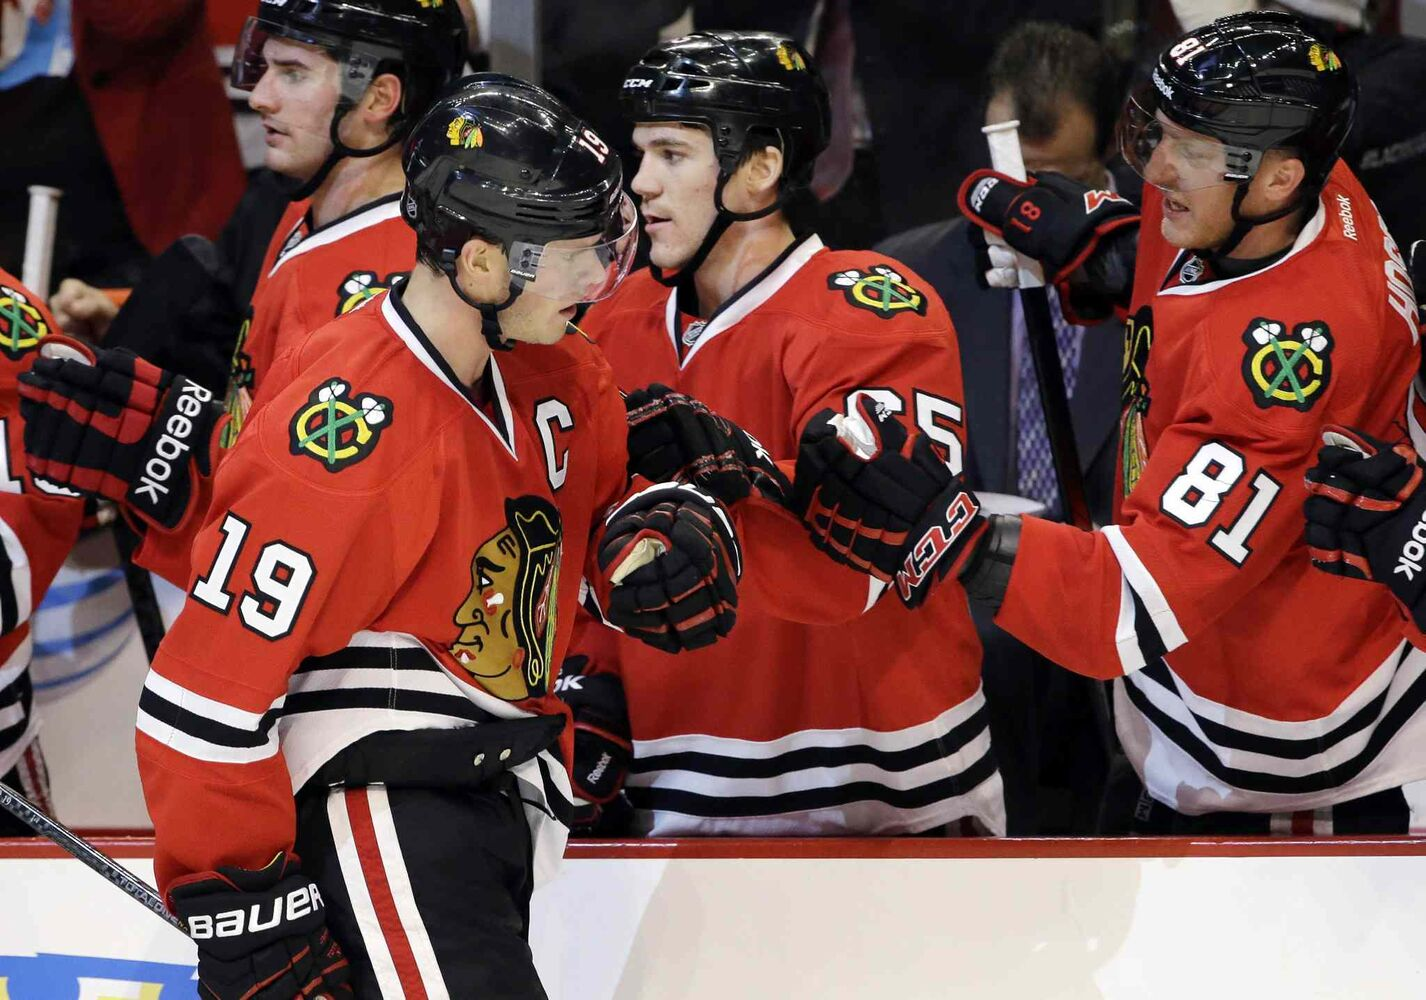 Chicago Blackhawks' Jonathan Toews (19) celebrates with teammates after scoring a goal during the first period. (Nam Y. Huh / The Associated Press)